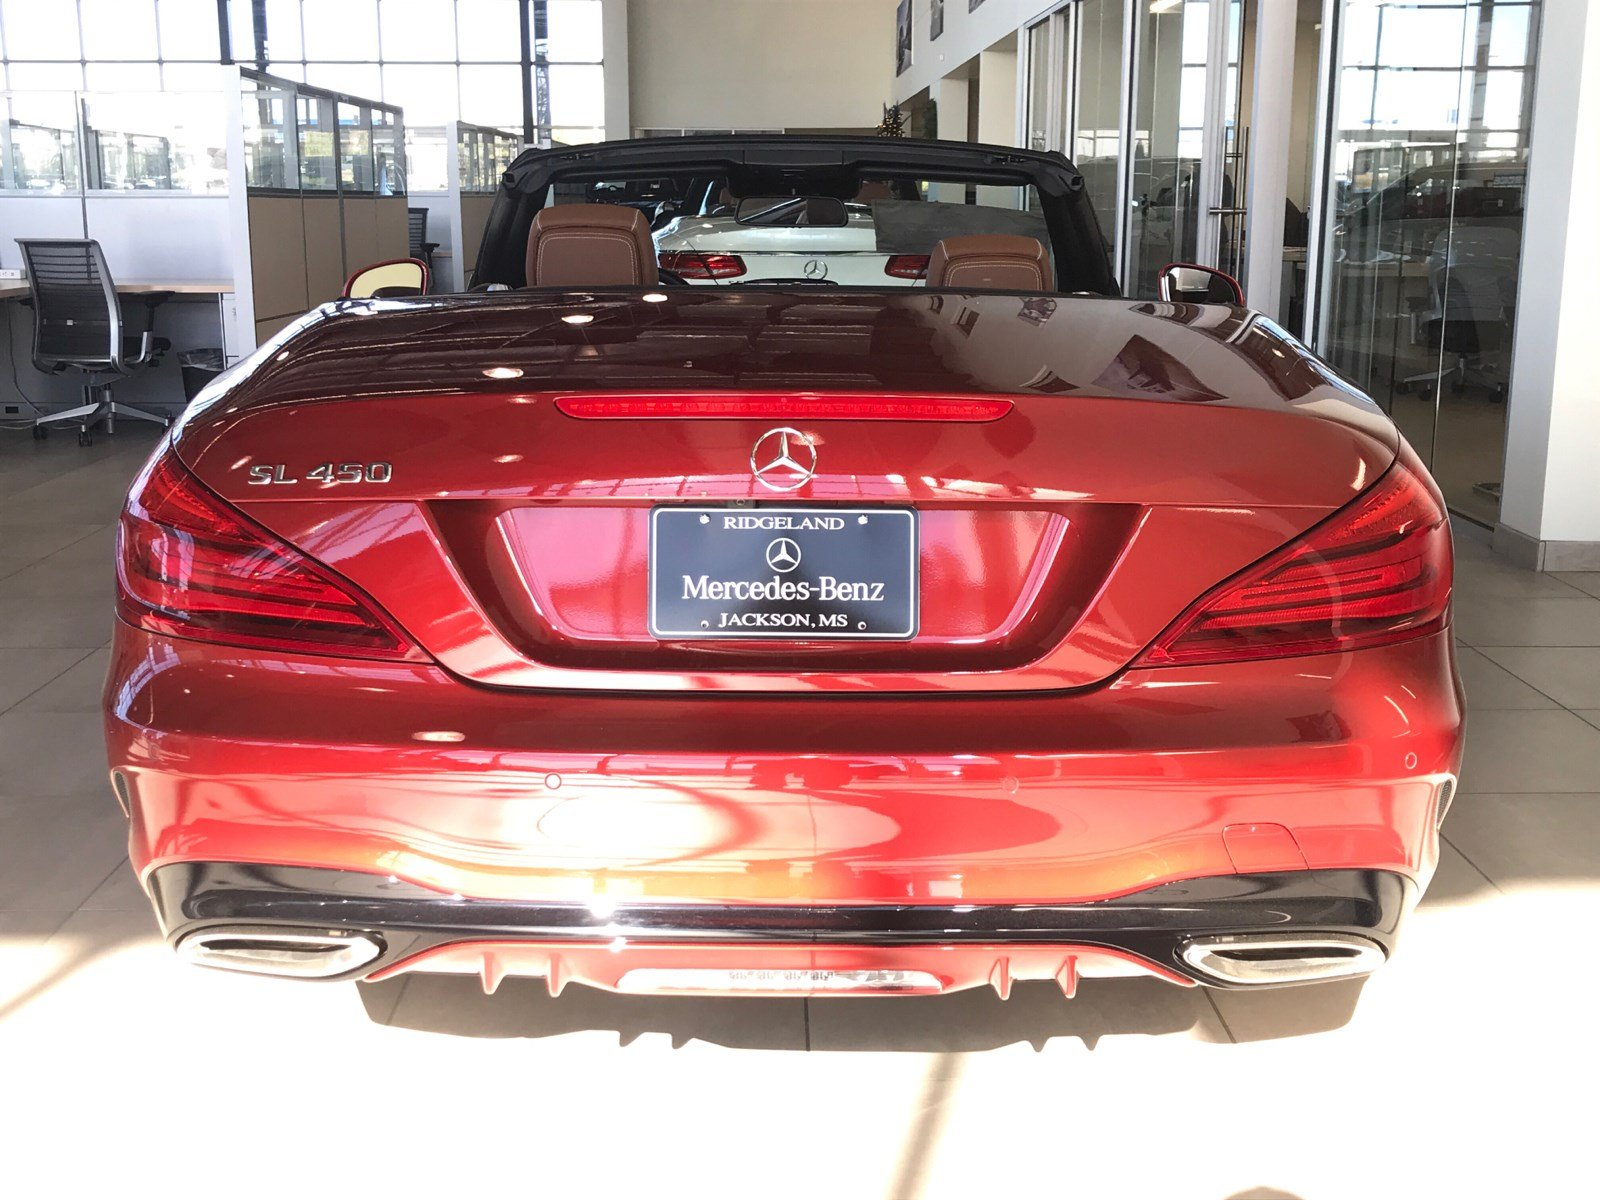 New 2018 mercedes benz sl sl 450 roadster in ridgeland for Jackson mercedes benz macon ga